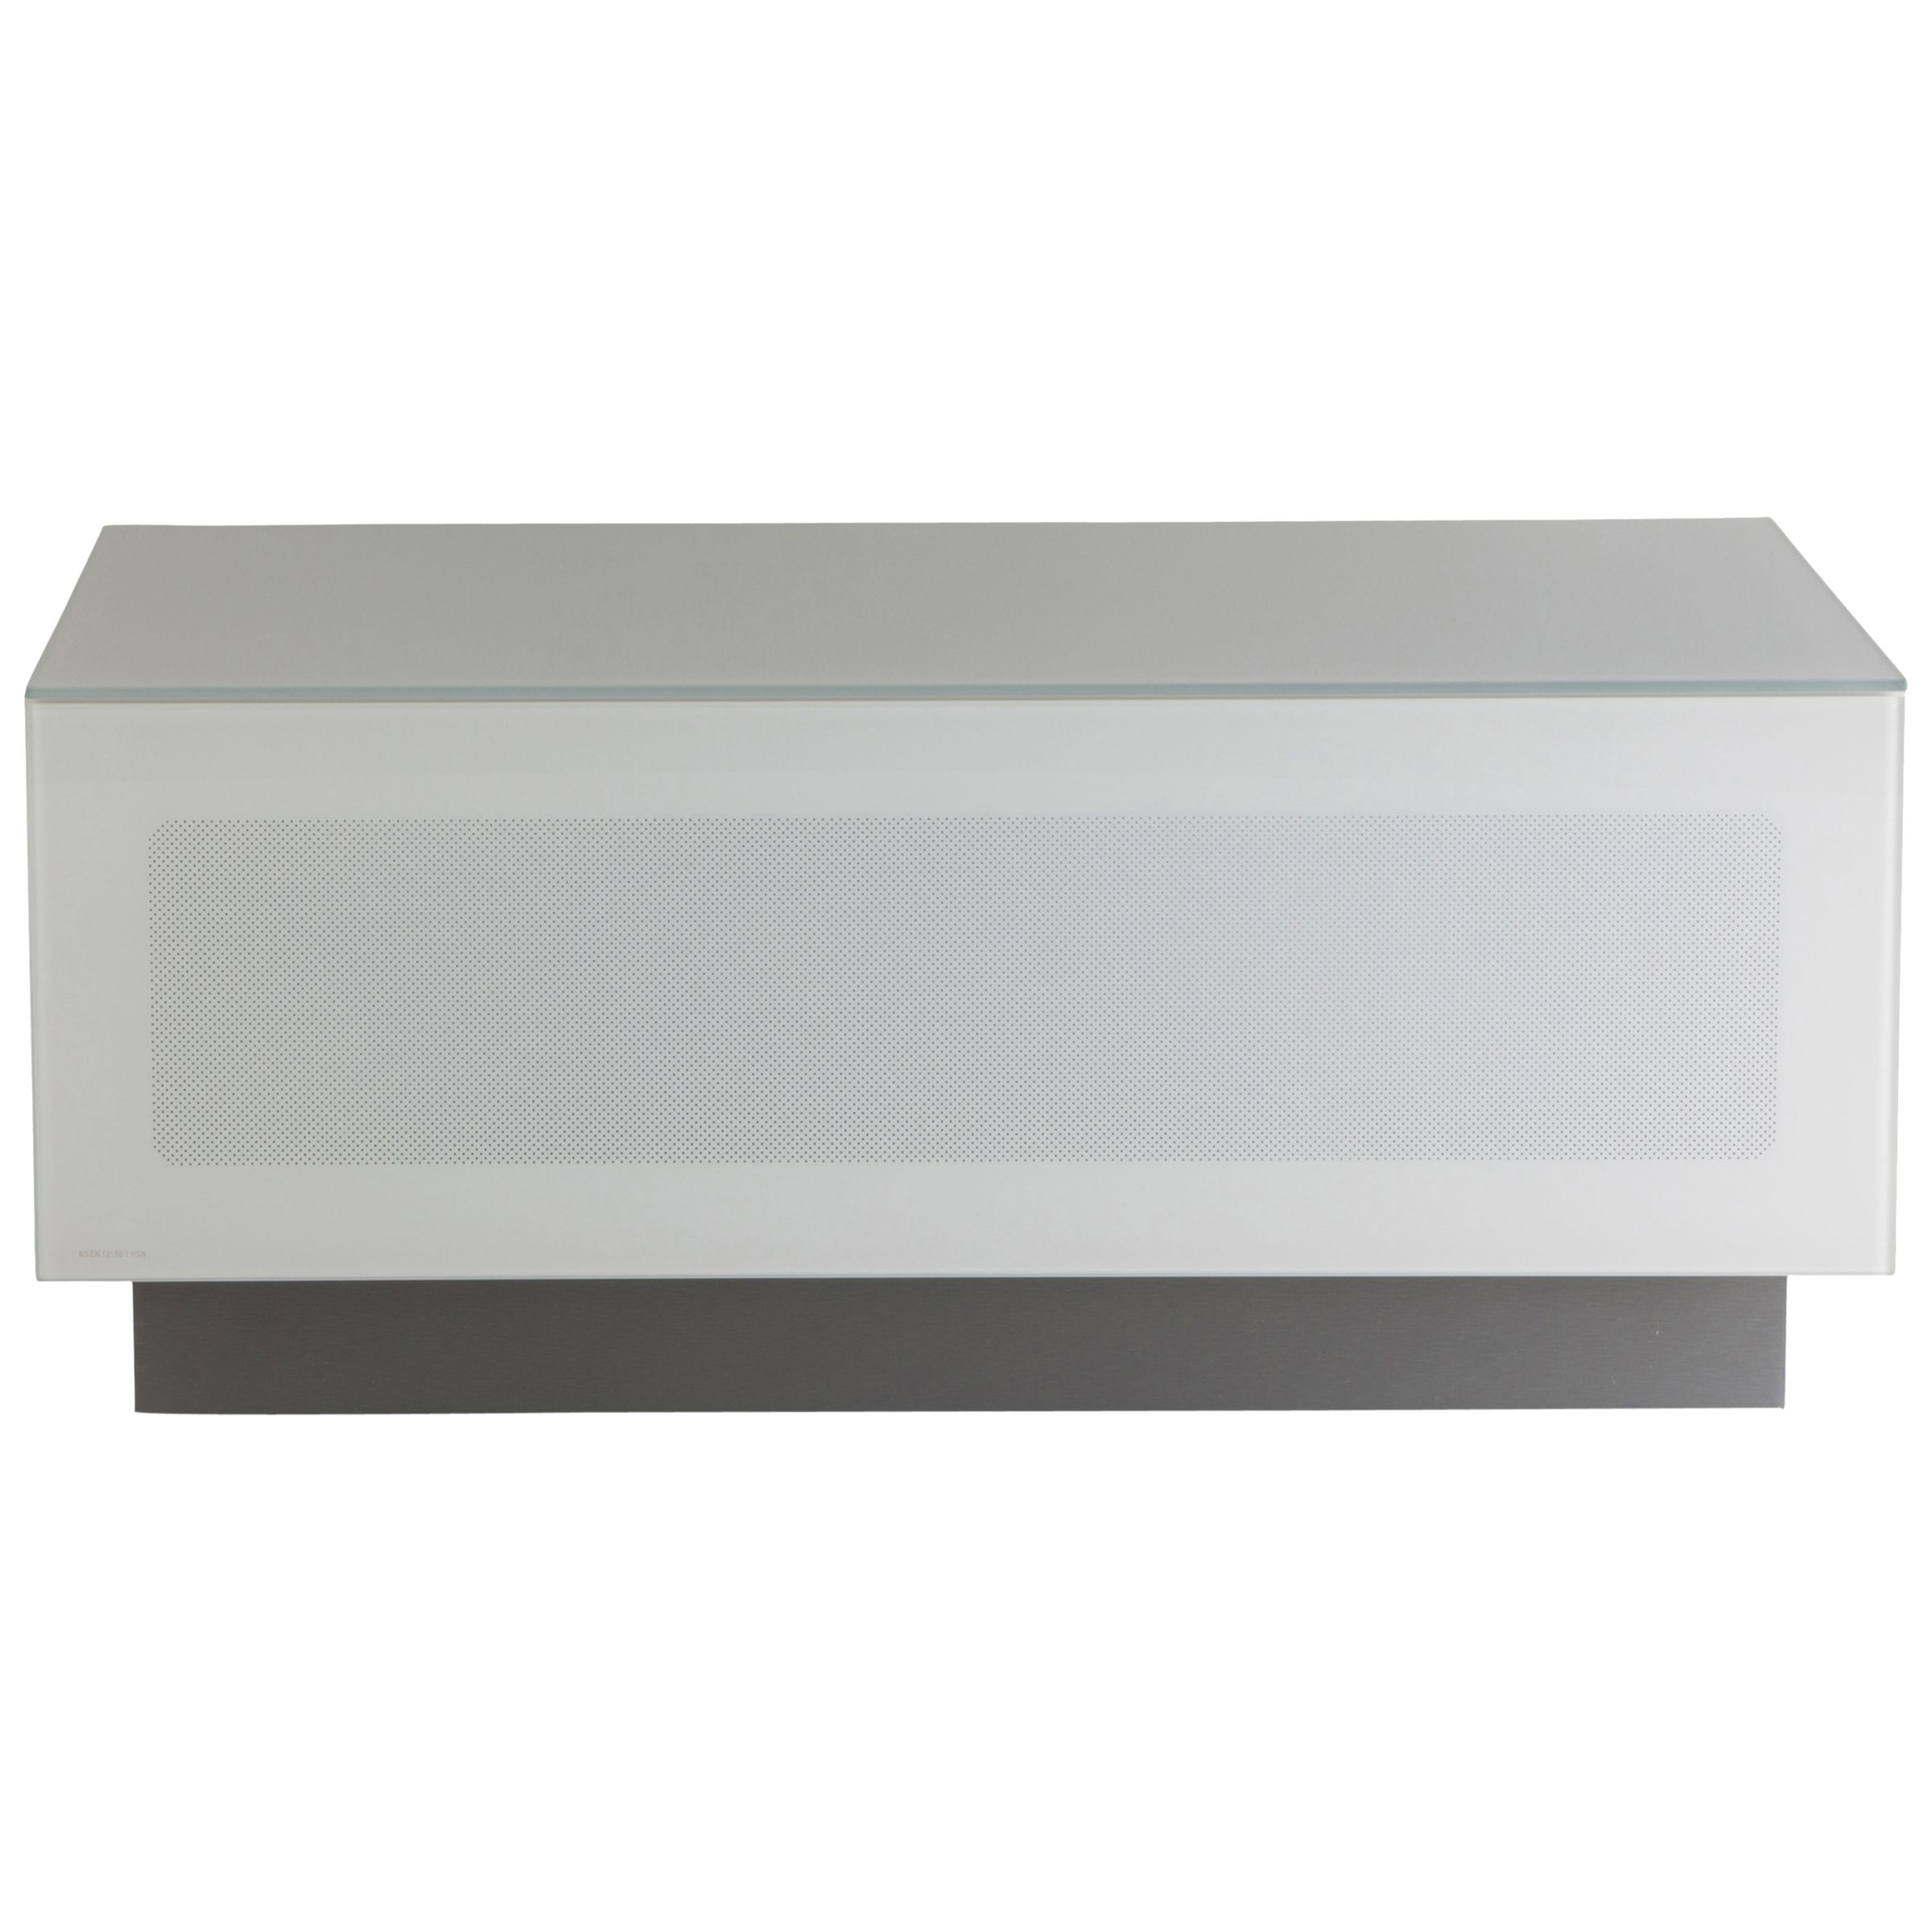 Alphason Alphason Element Modular 850mm Stand For TVs Up To 39